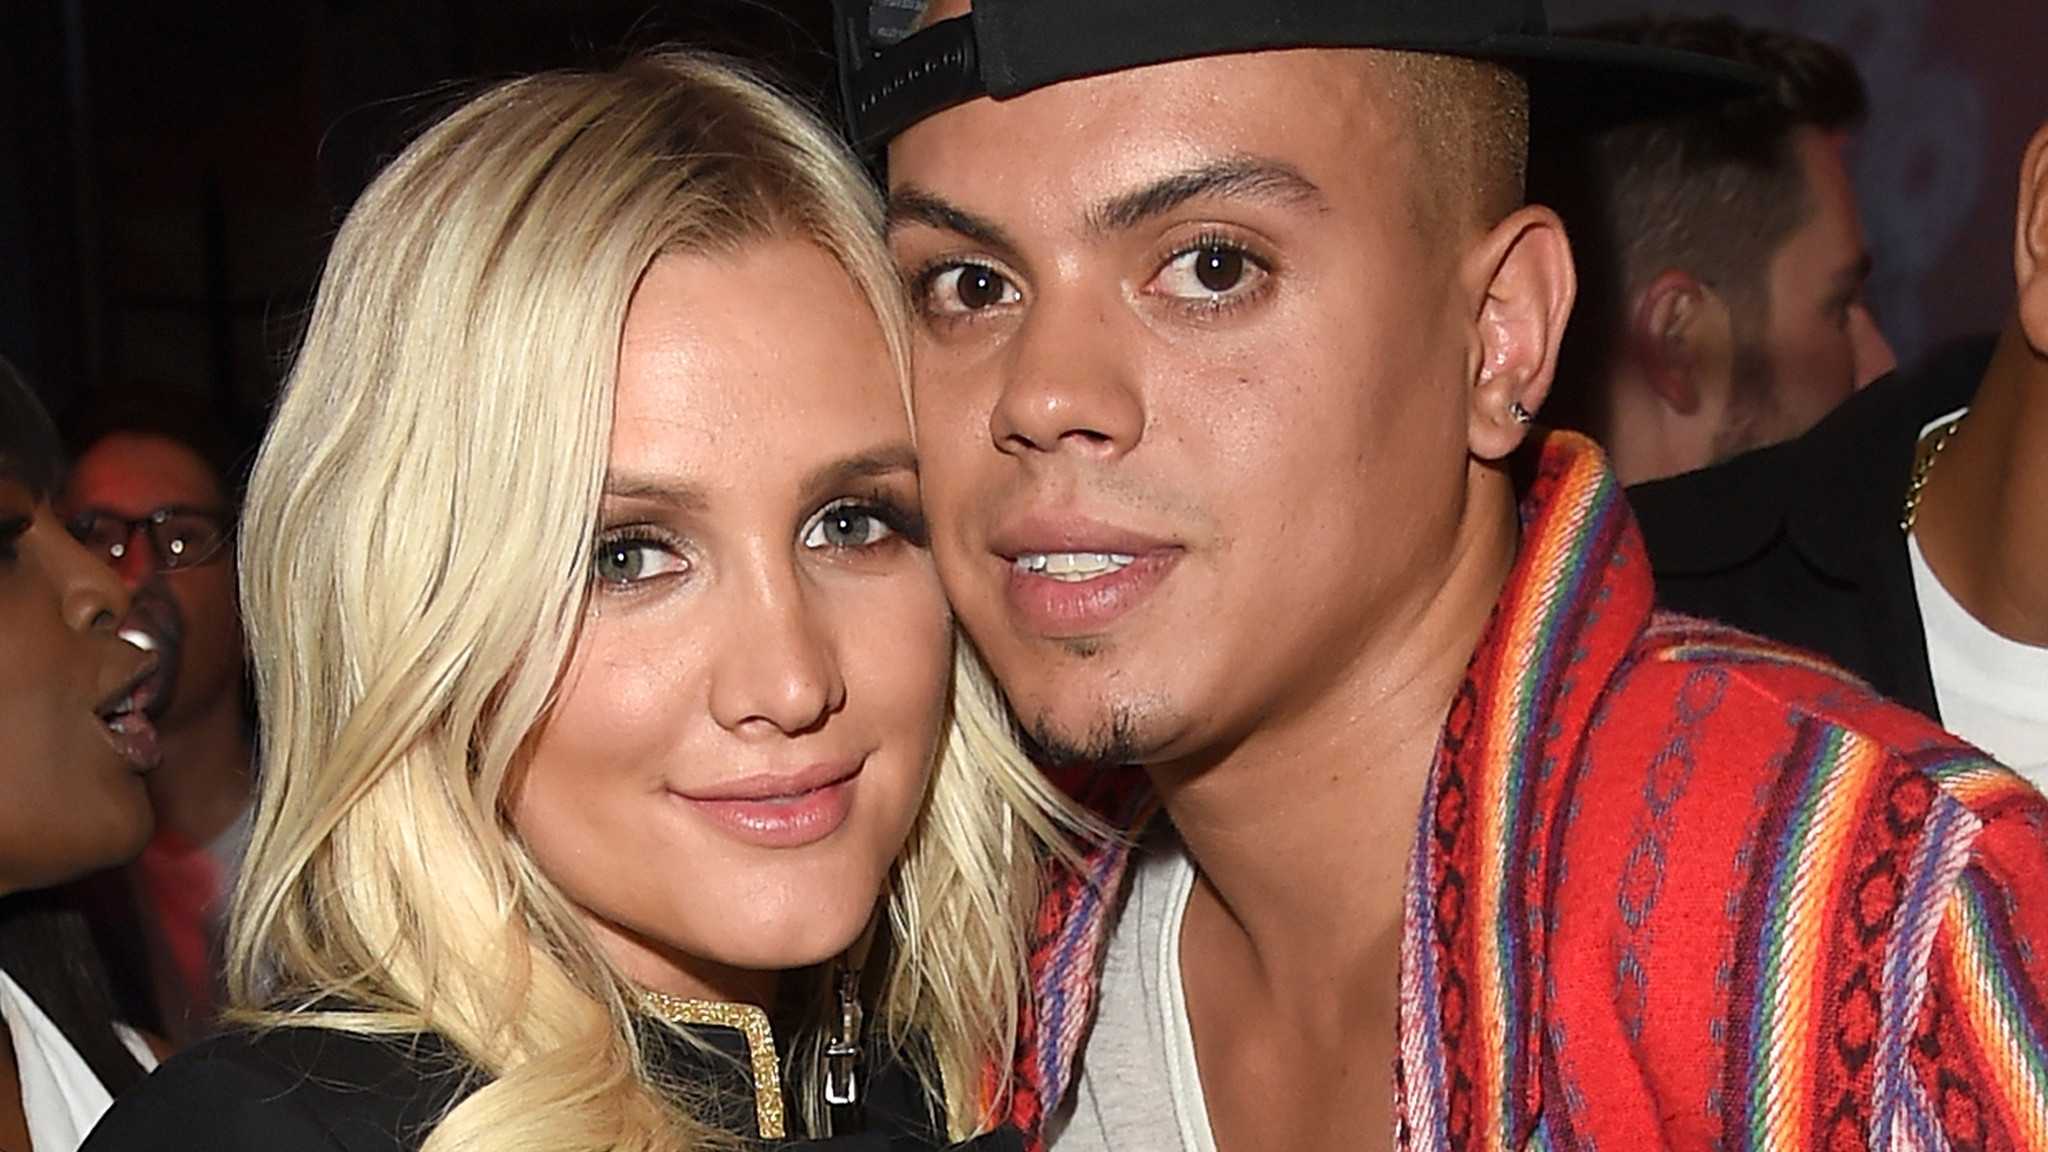 Ashlee Simpson, Evan Ross reportedly welcome a baby girl ...